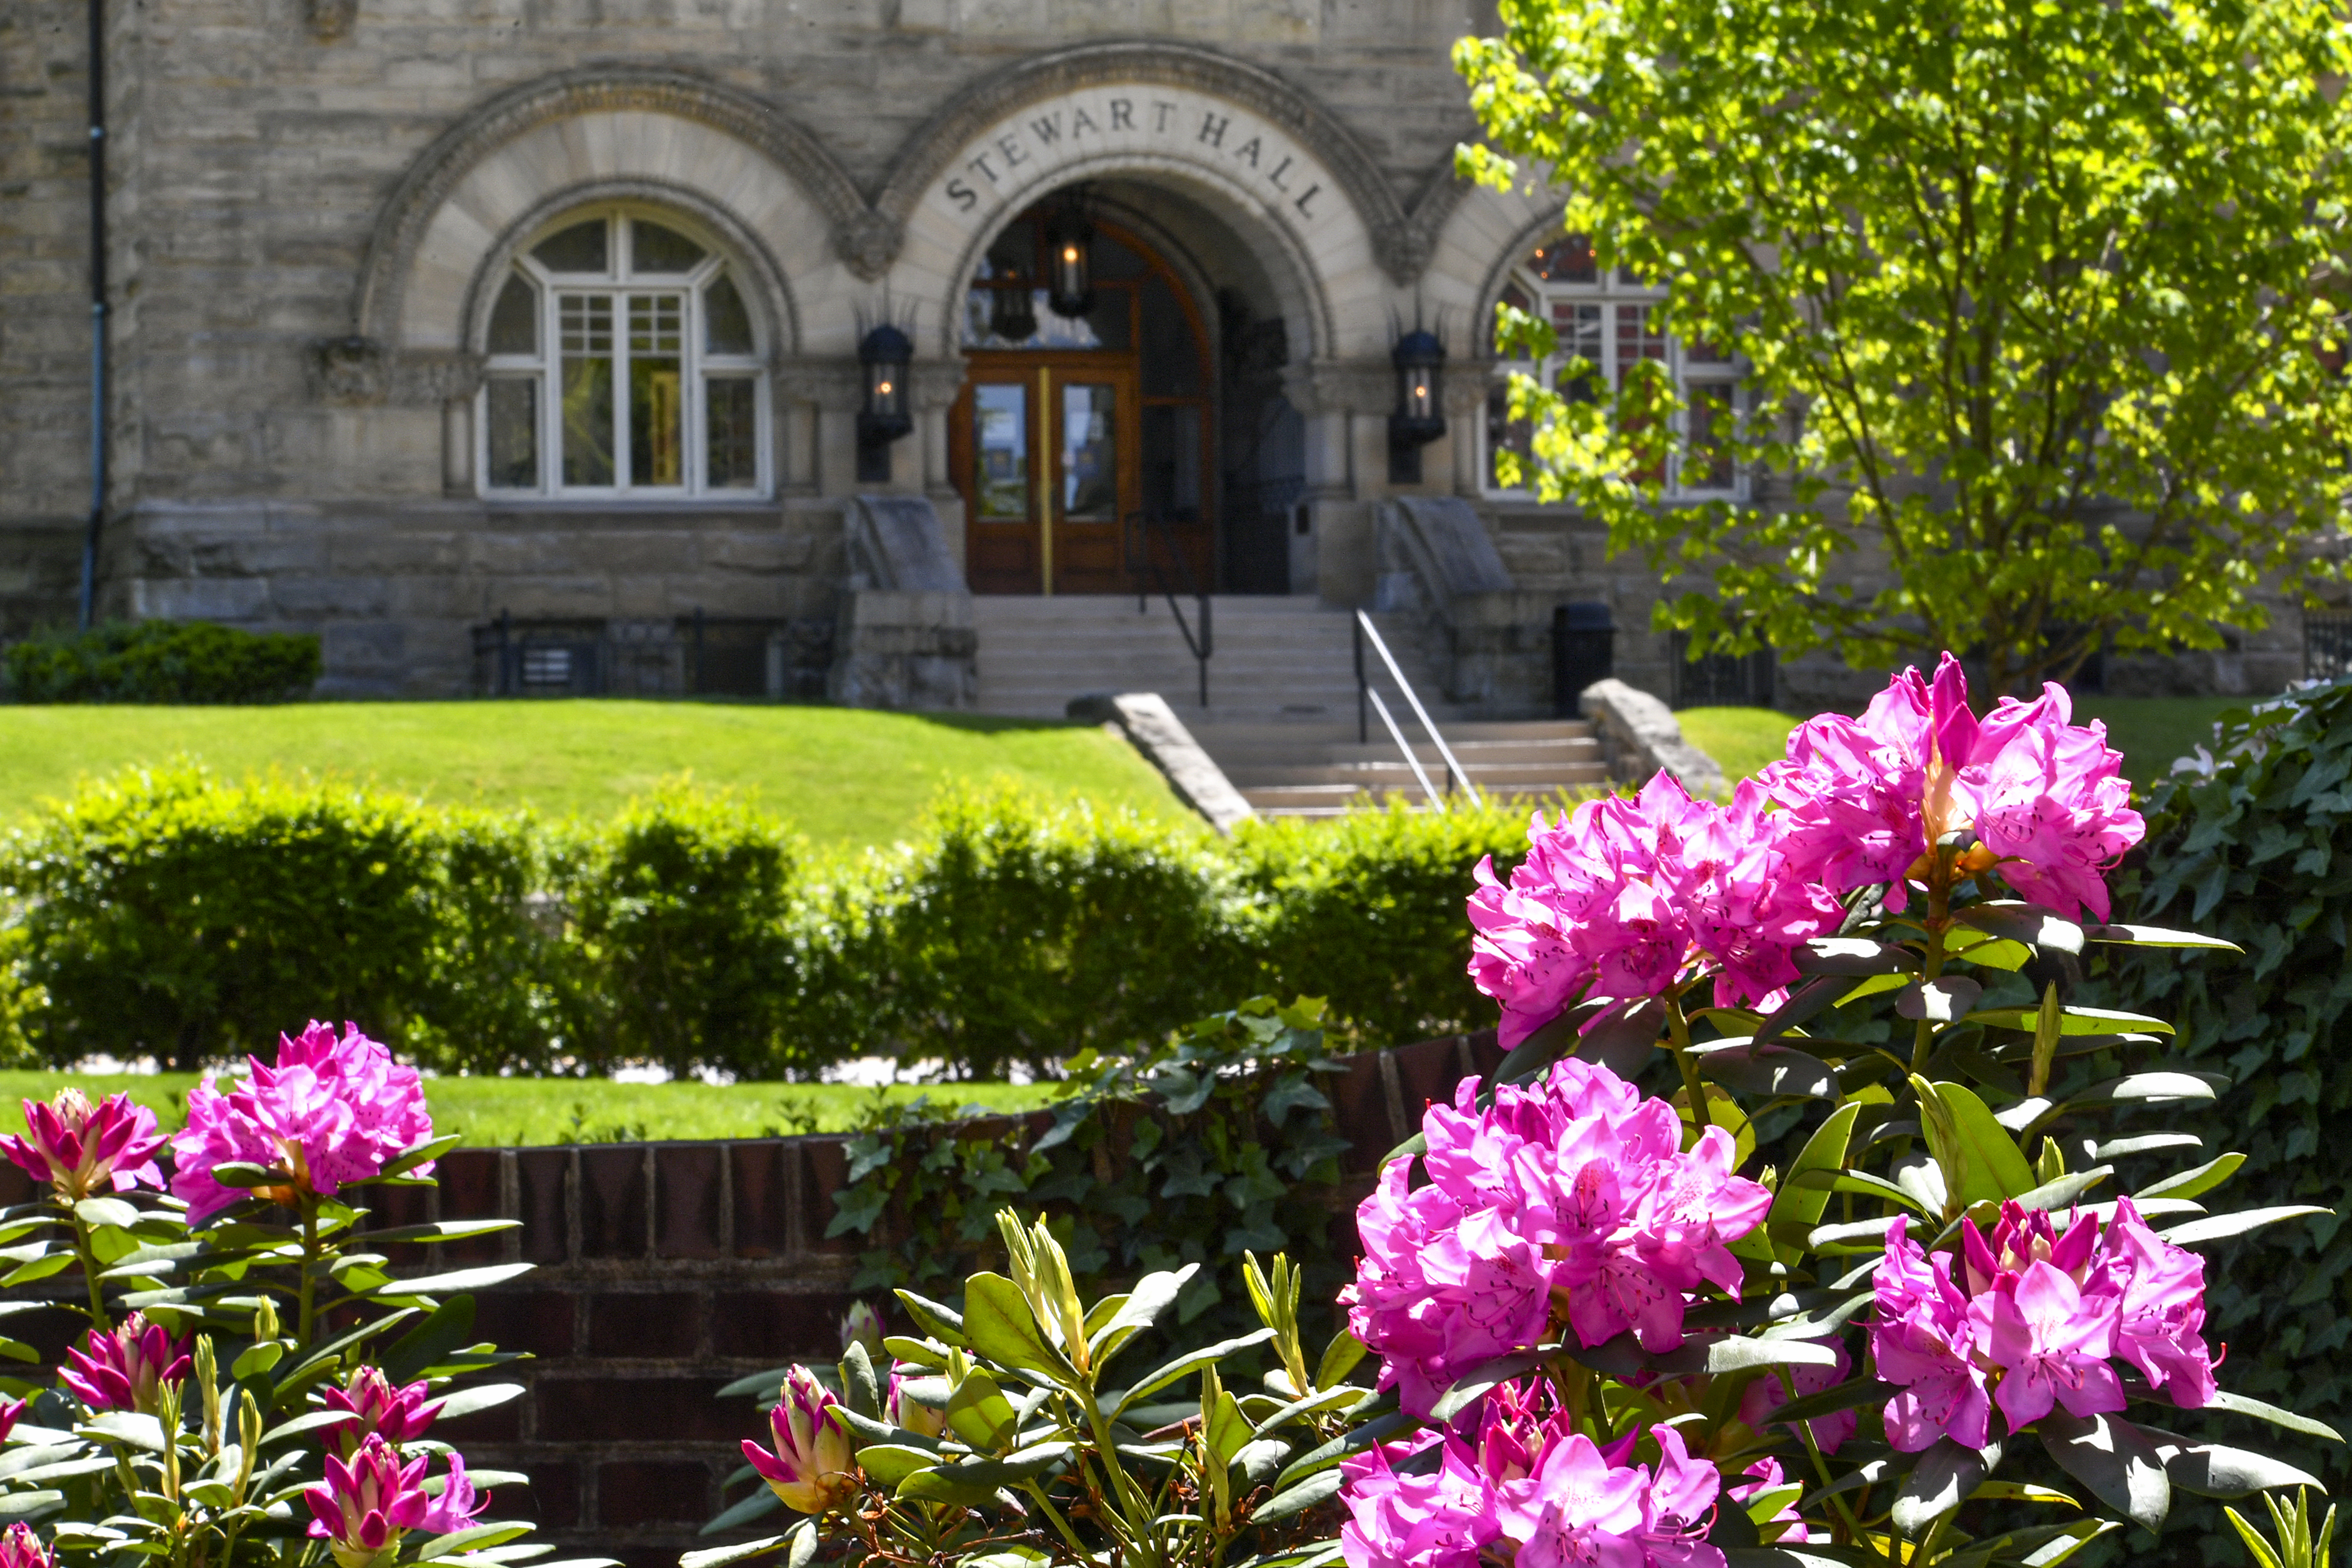 flowers bloom in front of large stone building